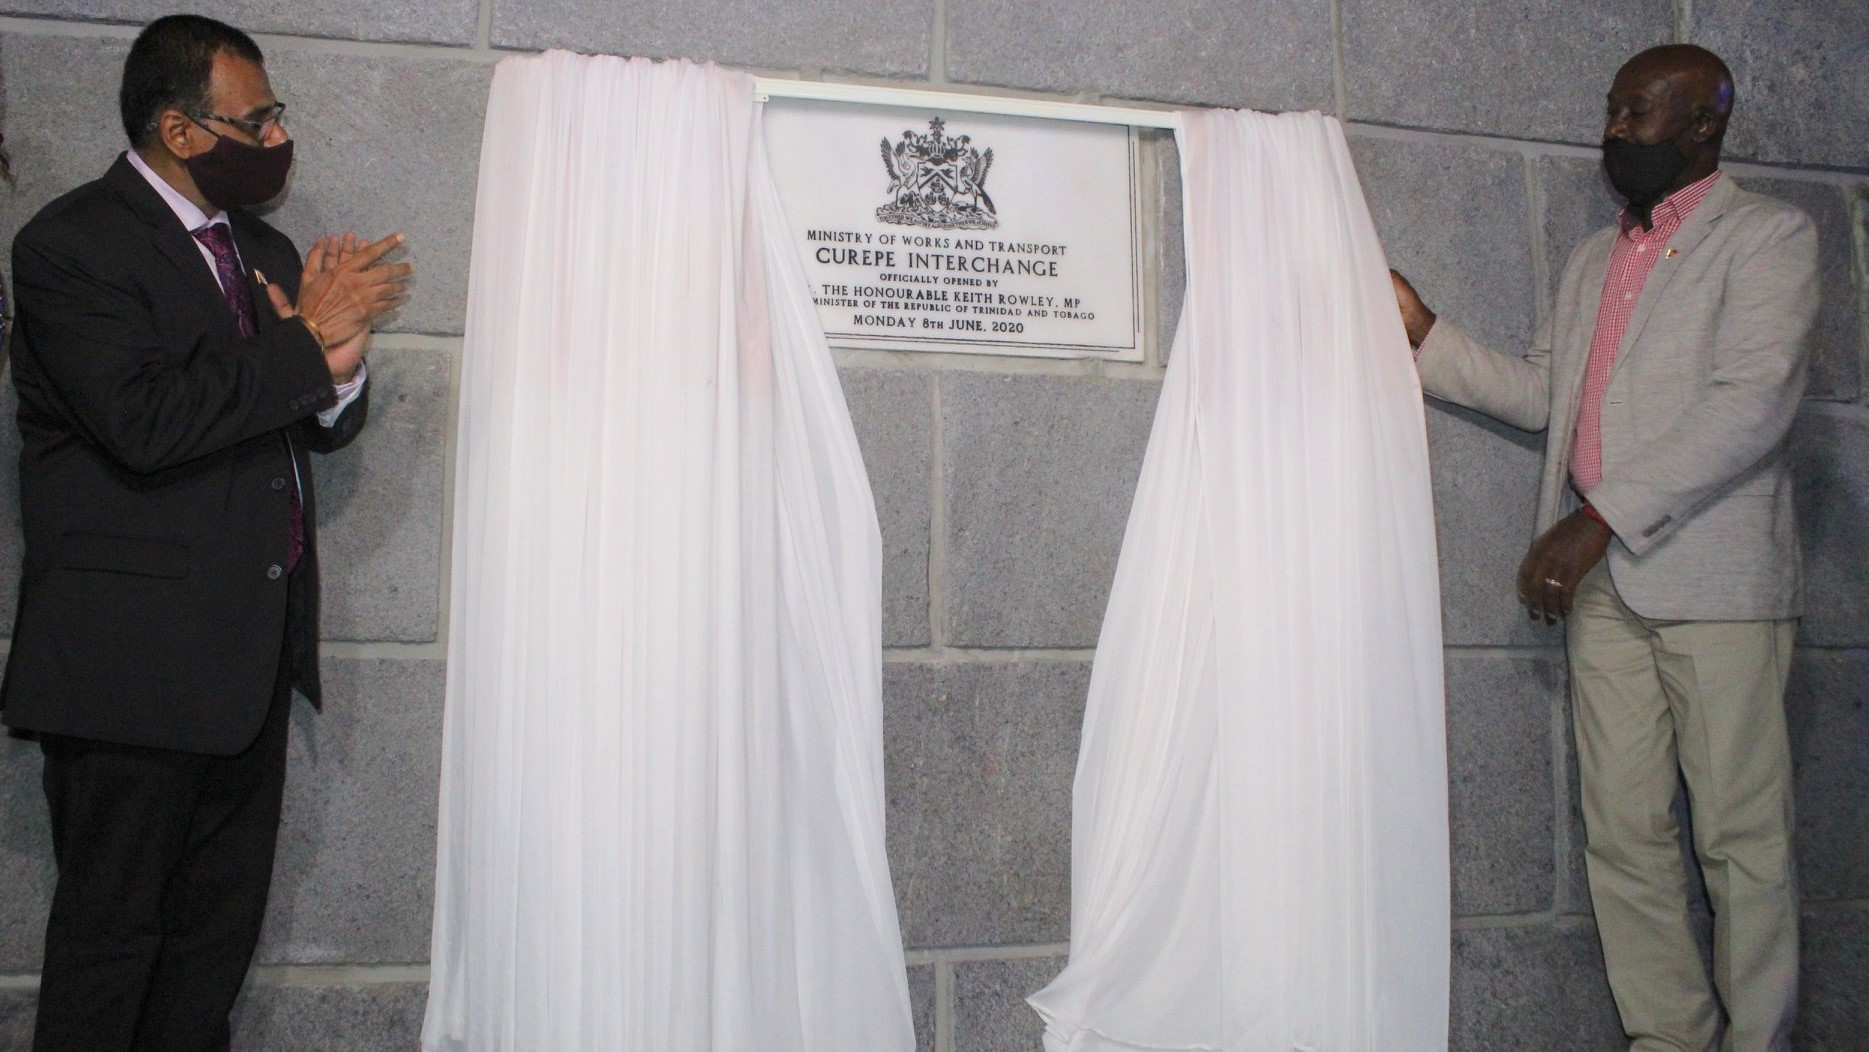 Minister of Works and Transport, Rohan Sinanan & Prime Minister Dr Keith Rowley unveil a plaque commemorating the opening of the Curepe Interchange (via Office of the Prime Minister)